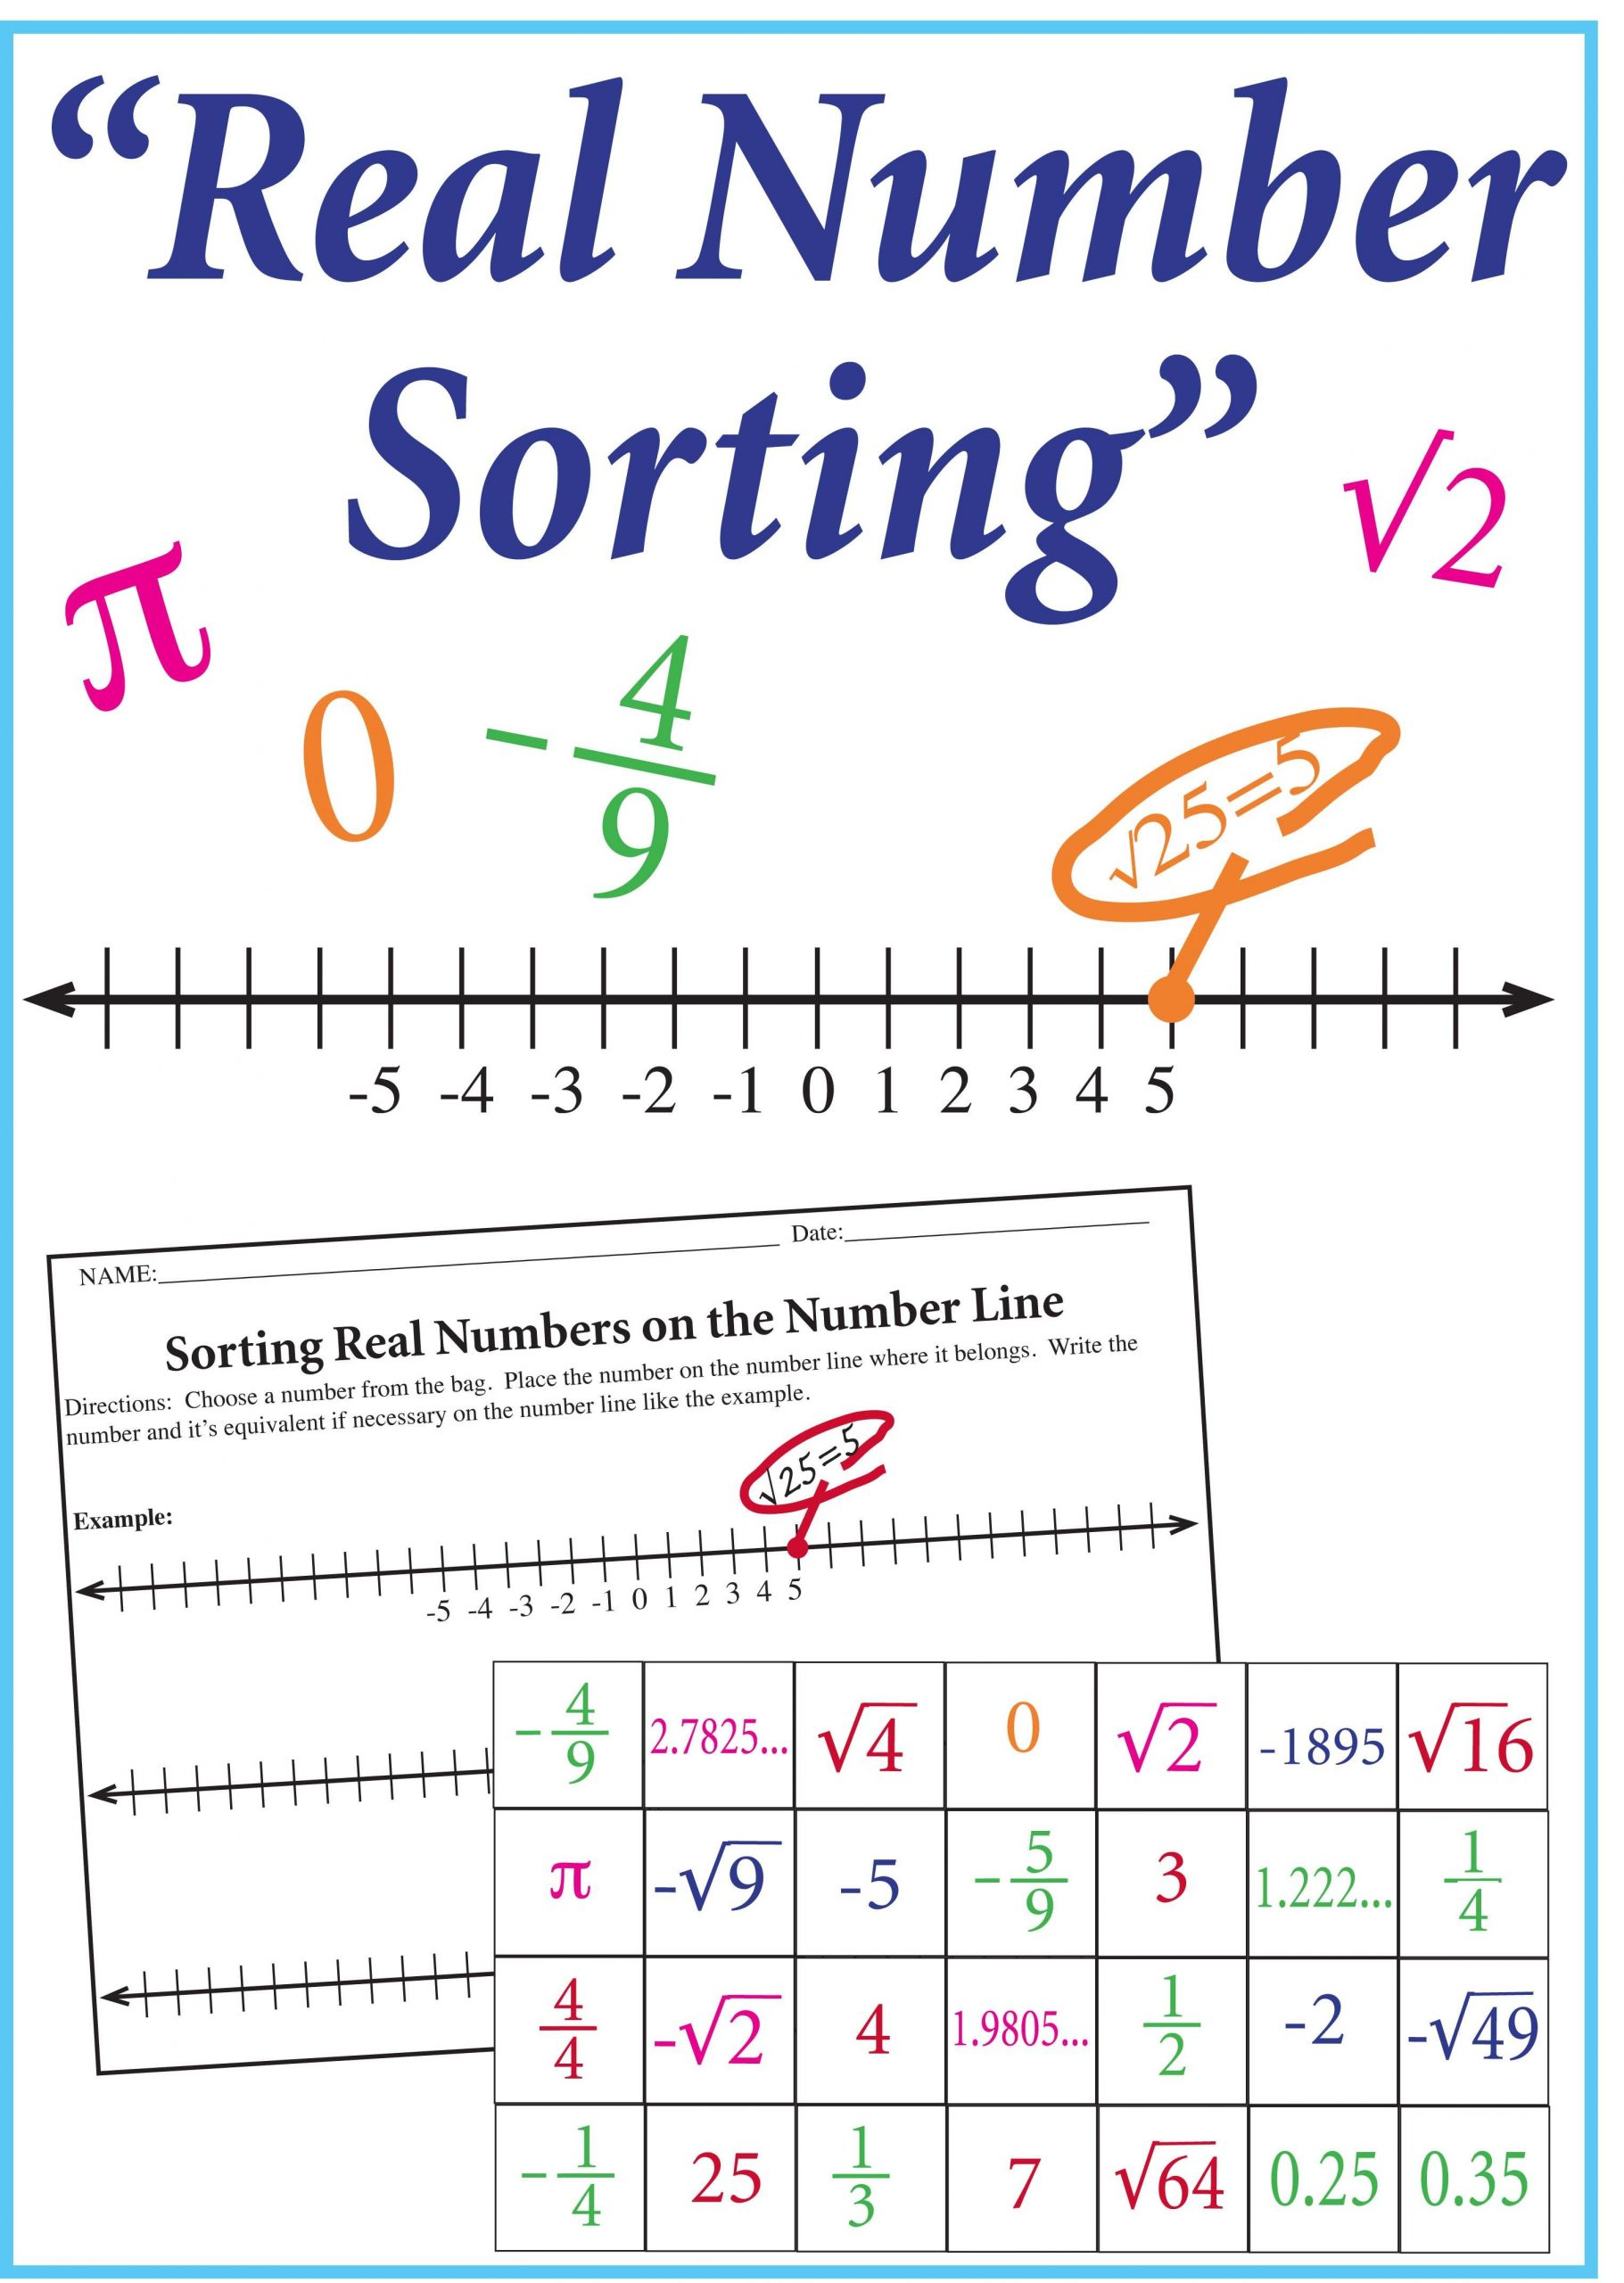 Properties Of Real Numbers Worksheet Real Number System sorting Challenge Activity